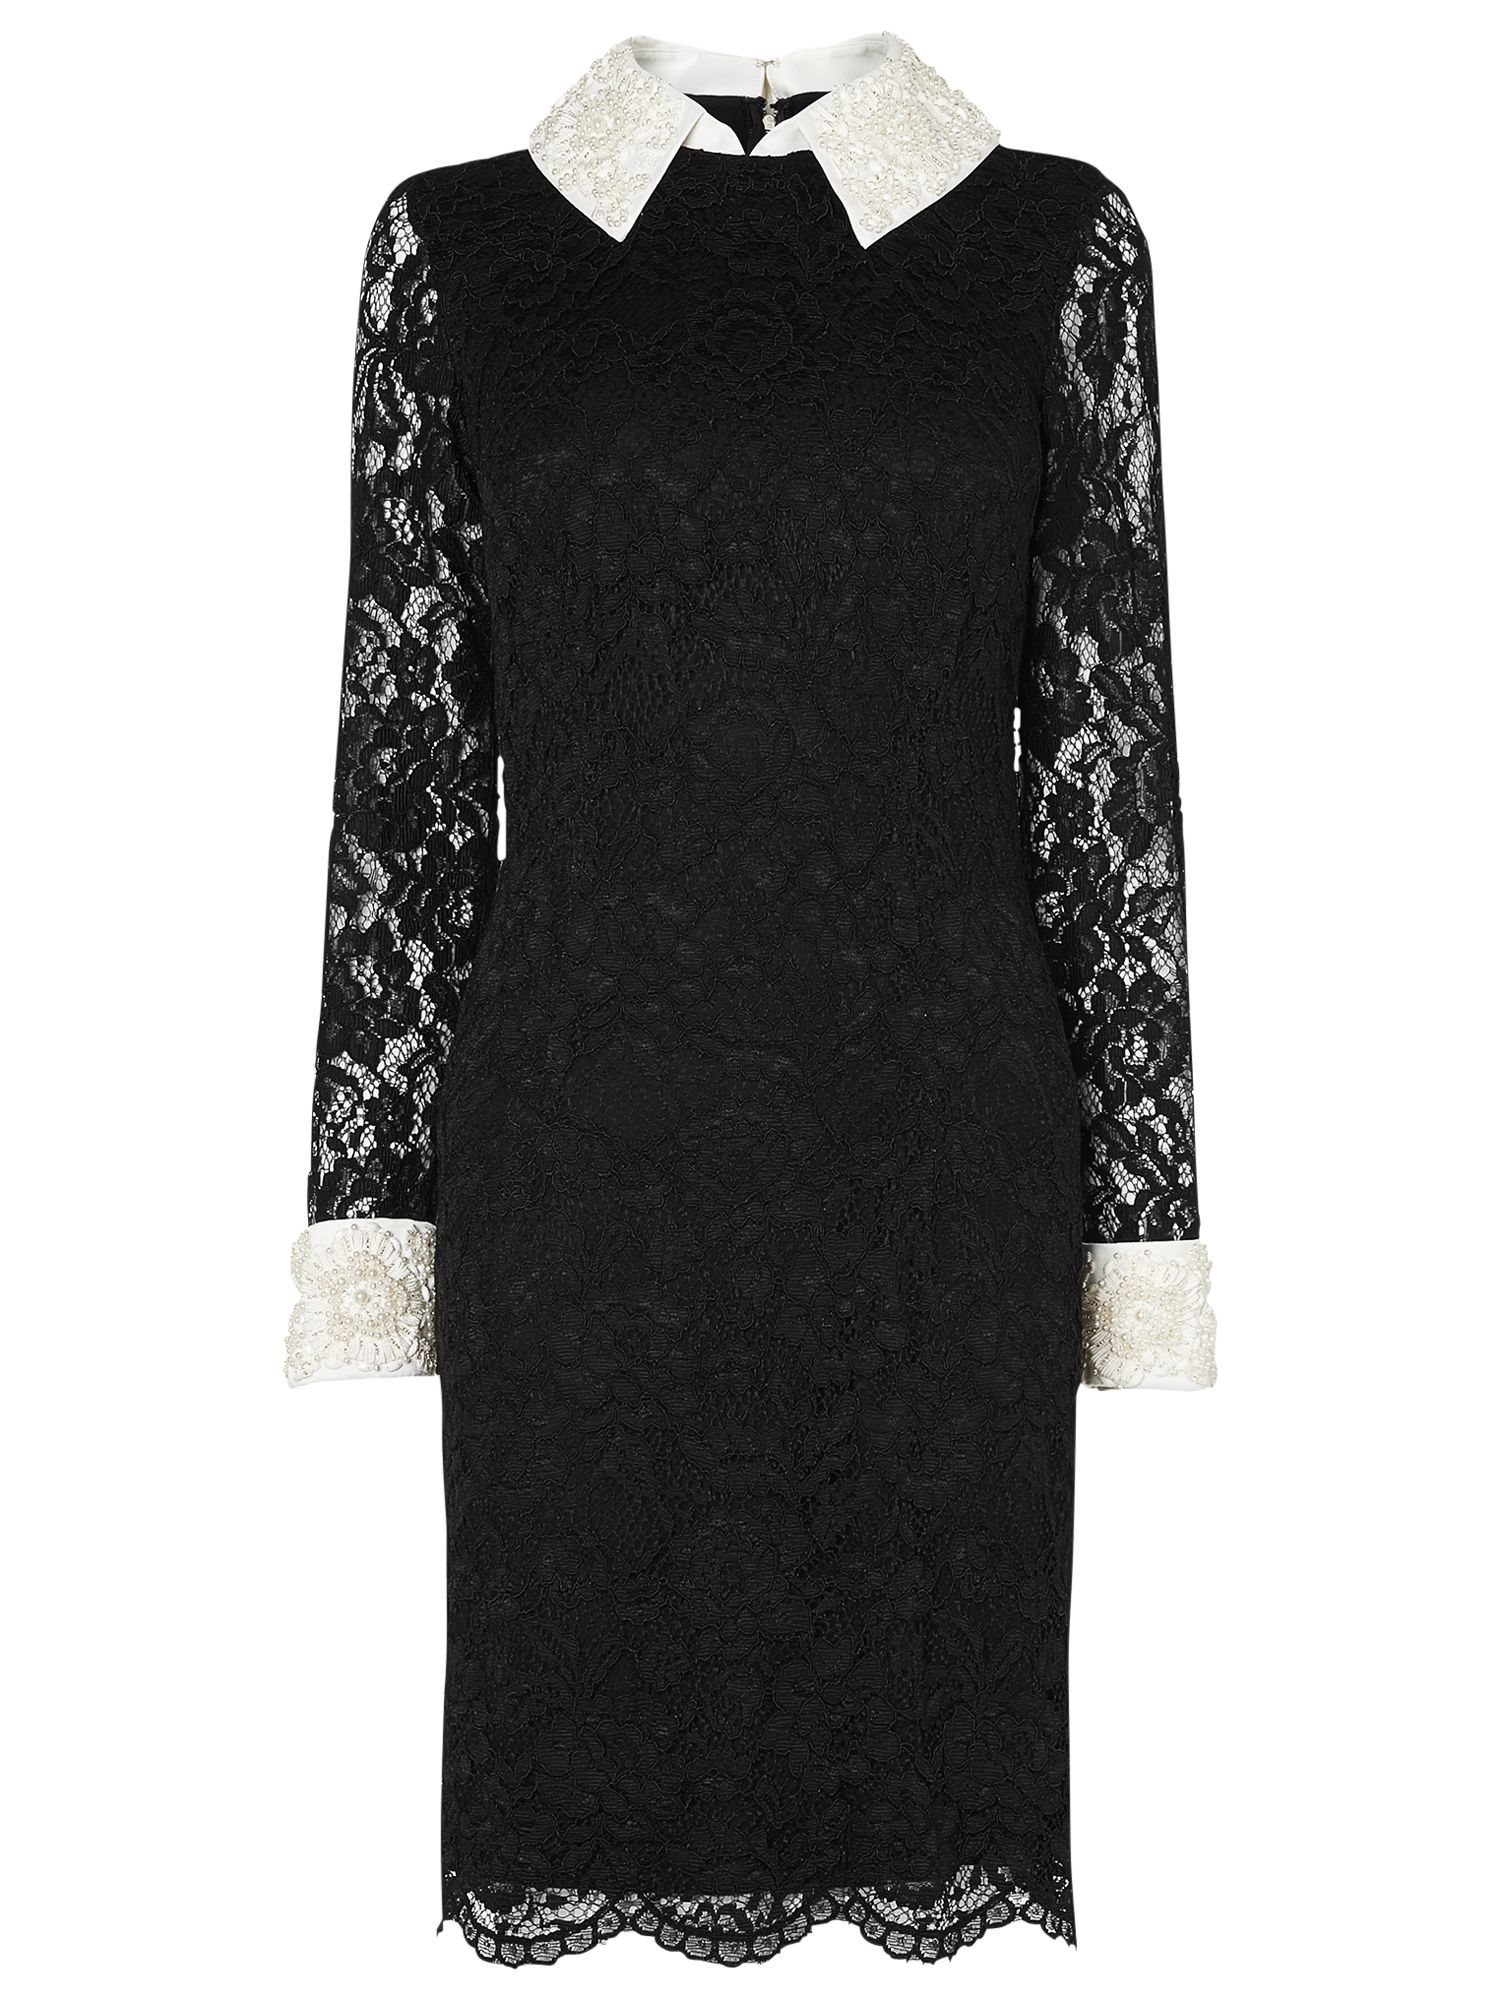 phase eight sienna embellished lace dress black, phase, eight, sienna, embellished, lace, dress, black, phase eight, 8|10, clearance, womenswear offers, womens dresses offers, women, womens dresses, special offers, fashion magazine, brands l-z, inactive womenswear, 1655992